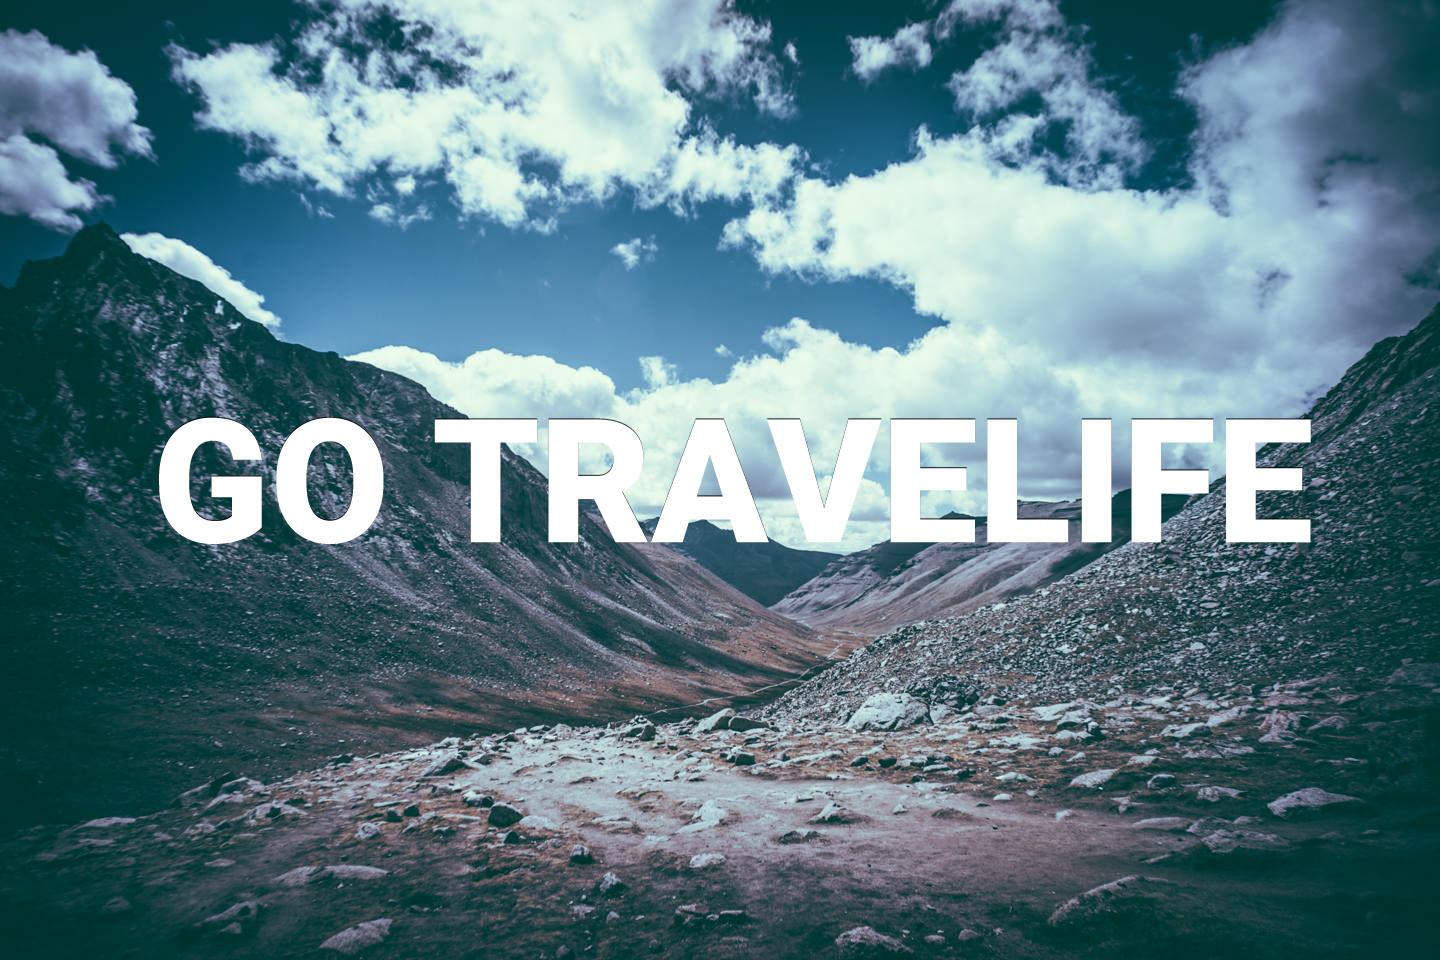 GO TRAVELIFE